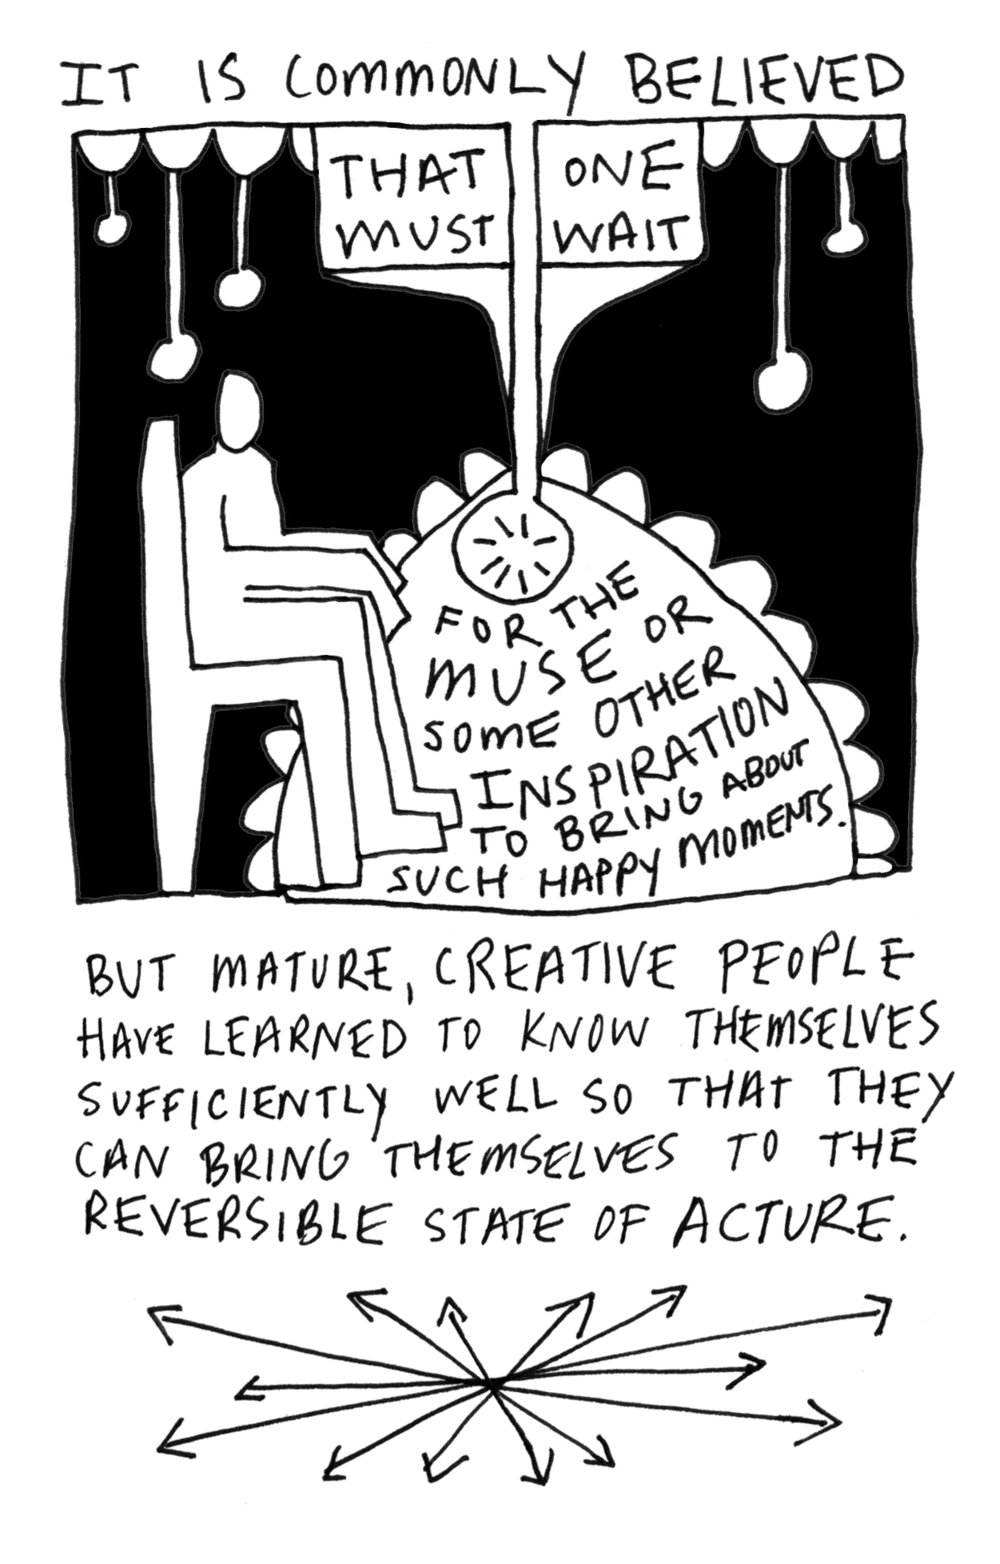 it is commonly believed + but mature creative - C.jpg